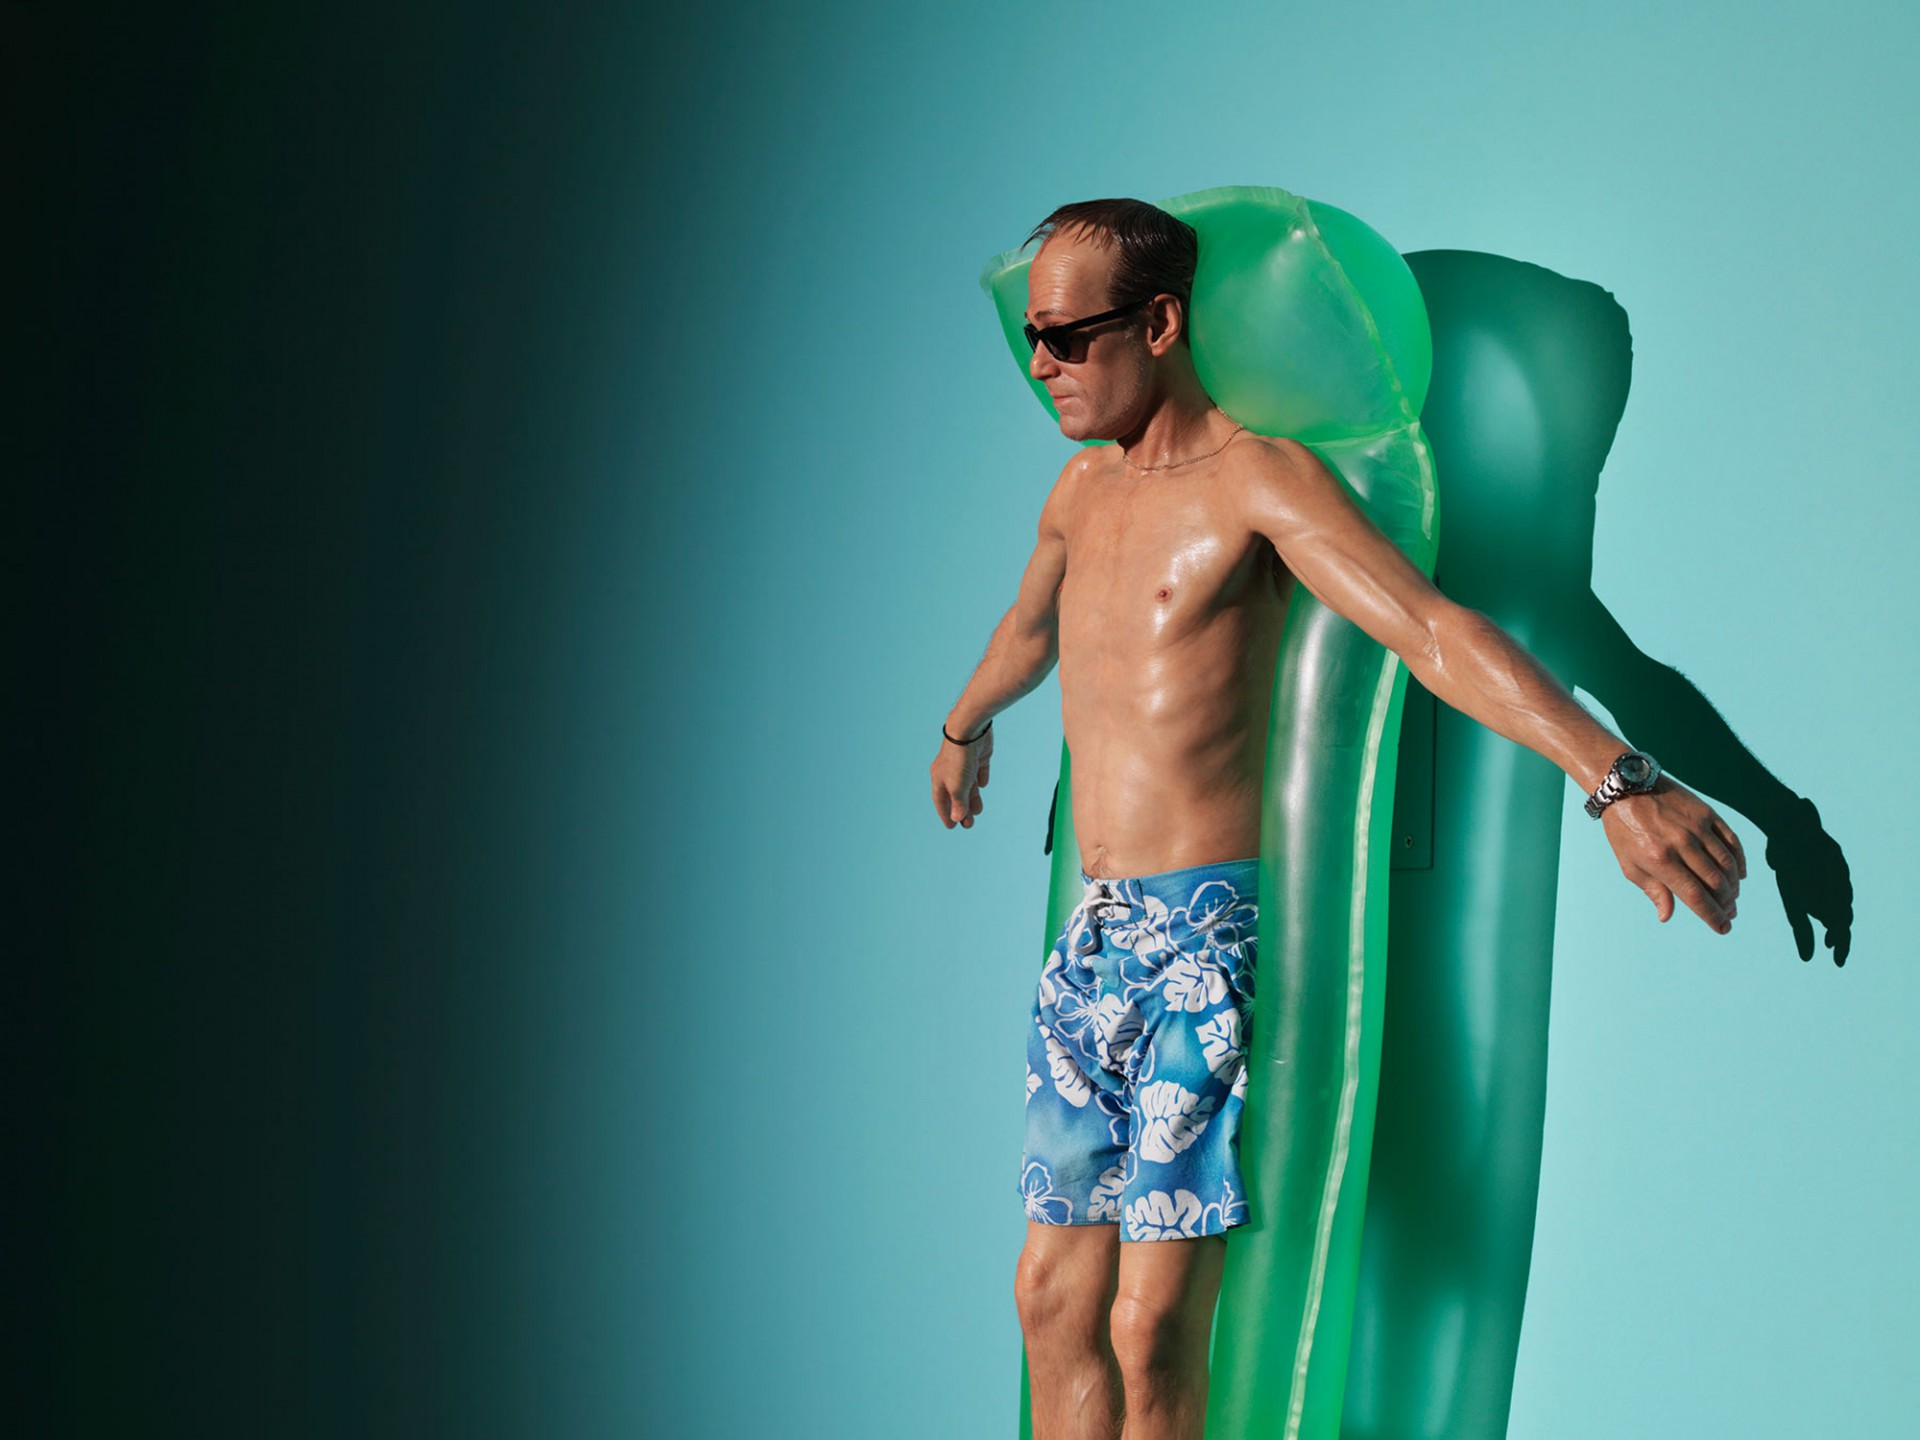 Patrick Gries Ron Mueck<br/>Fondation Cartier pour l&#8217;art contemporain  2013